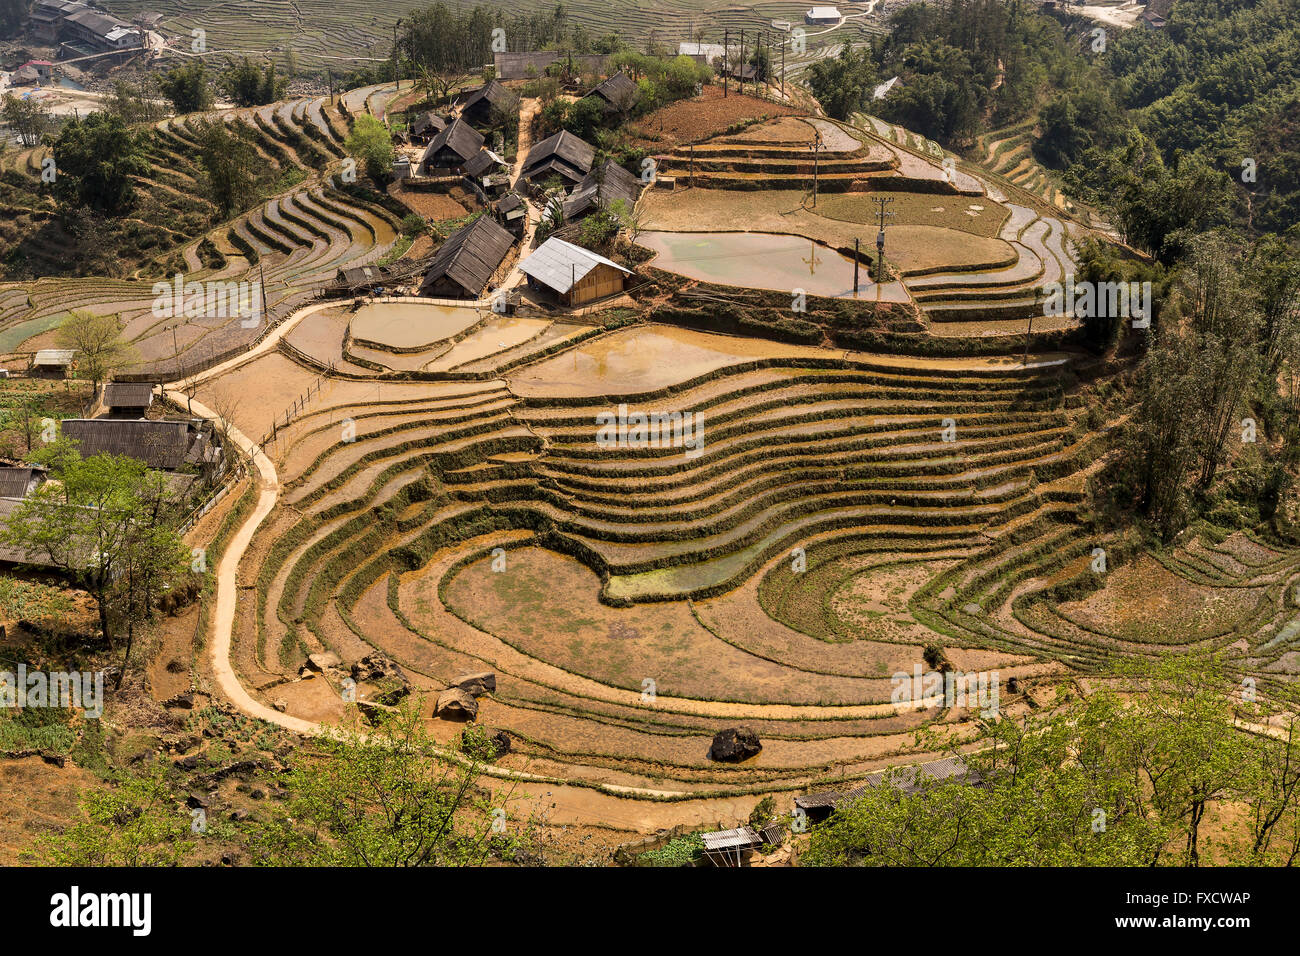 Rice fields in SaPa during Winter - Stock Image